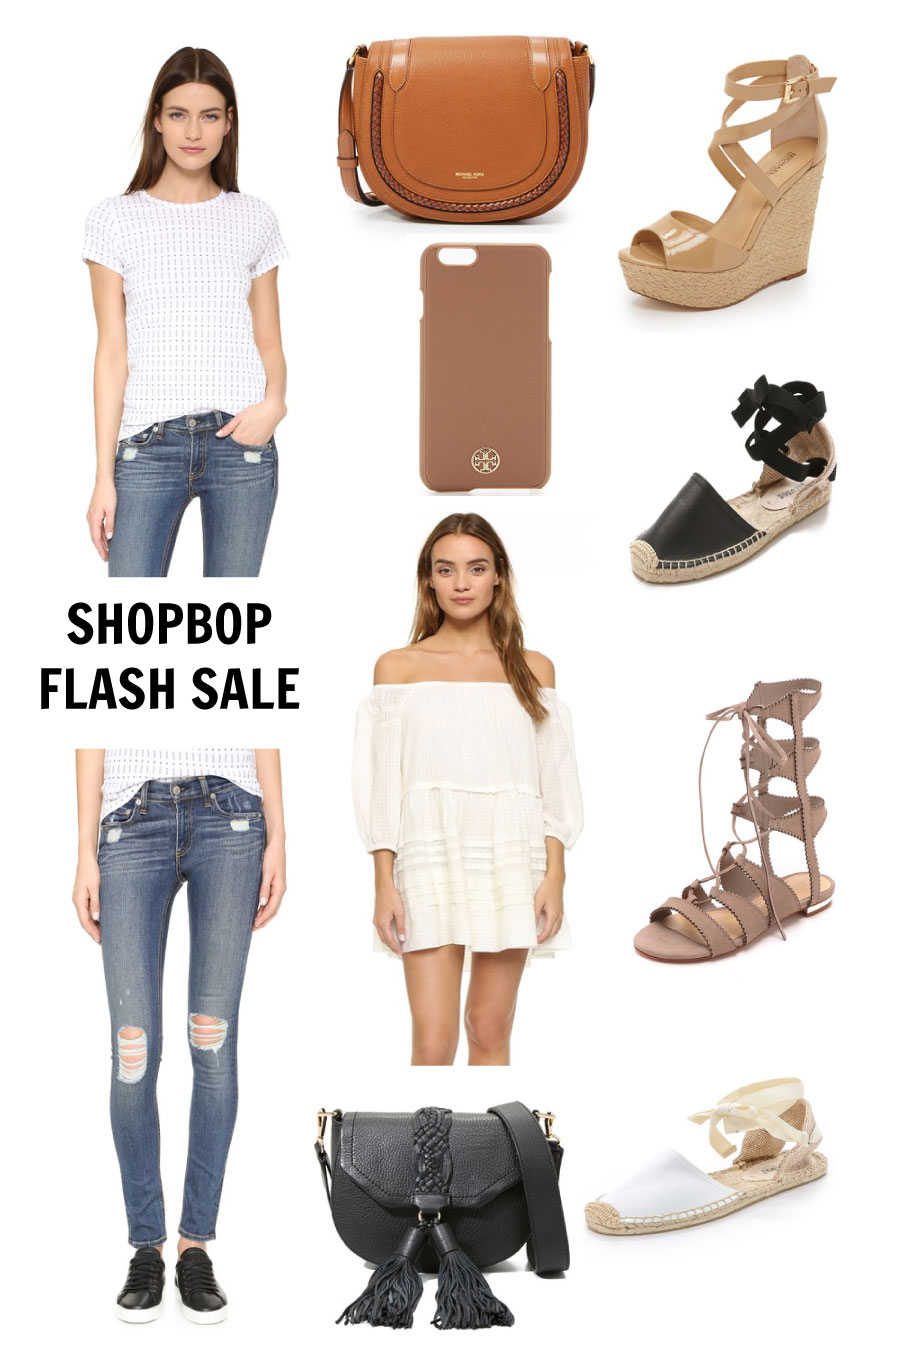 shopbop flash sale